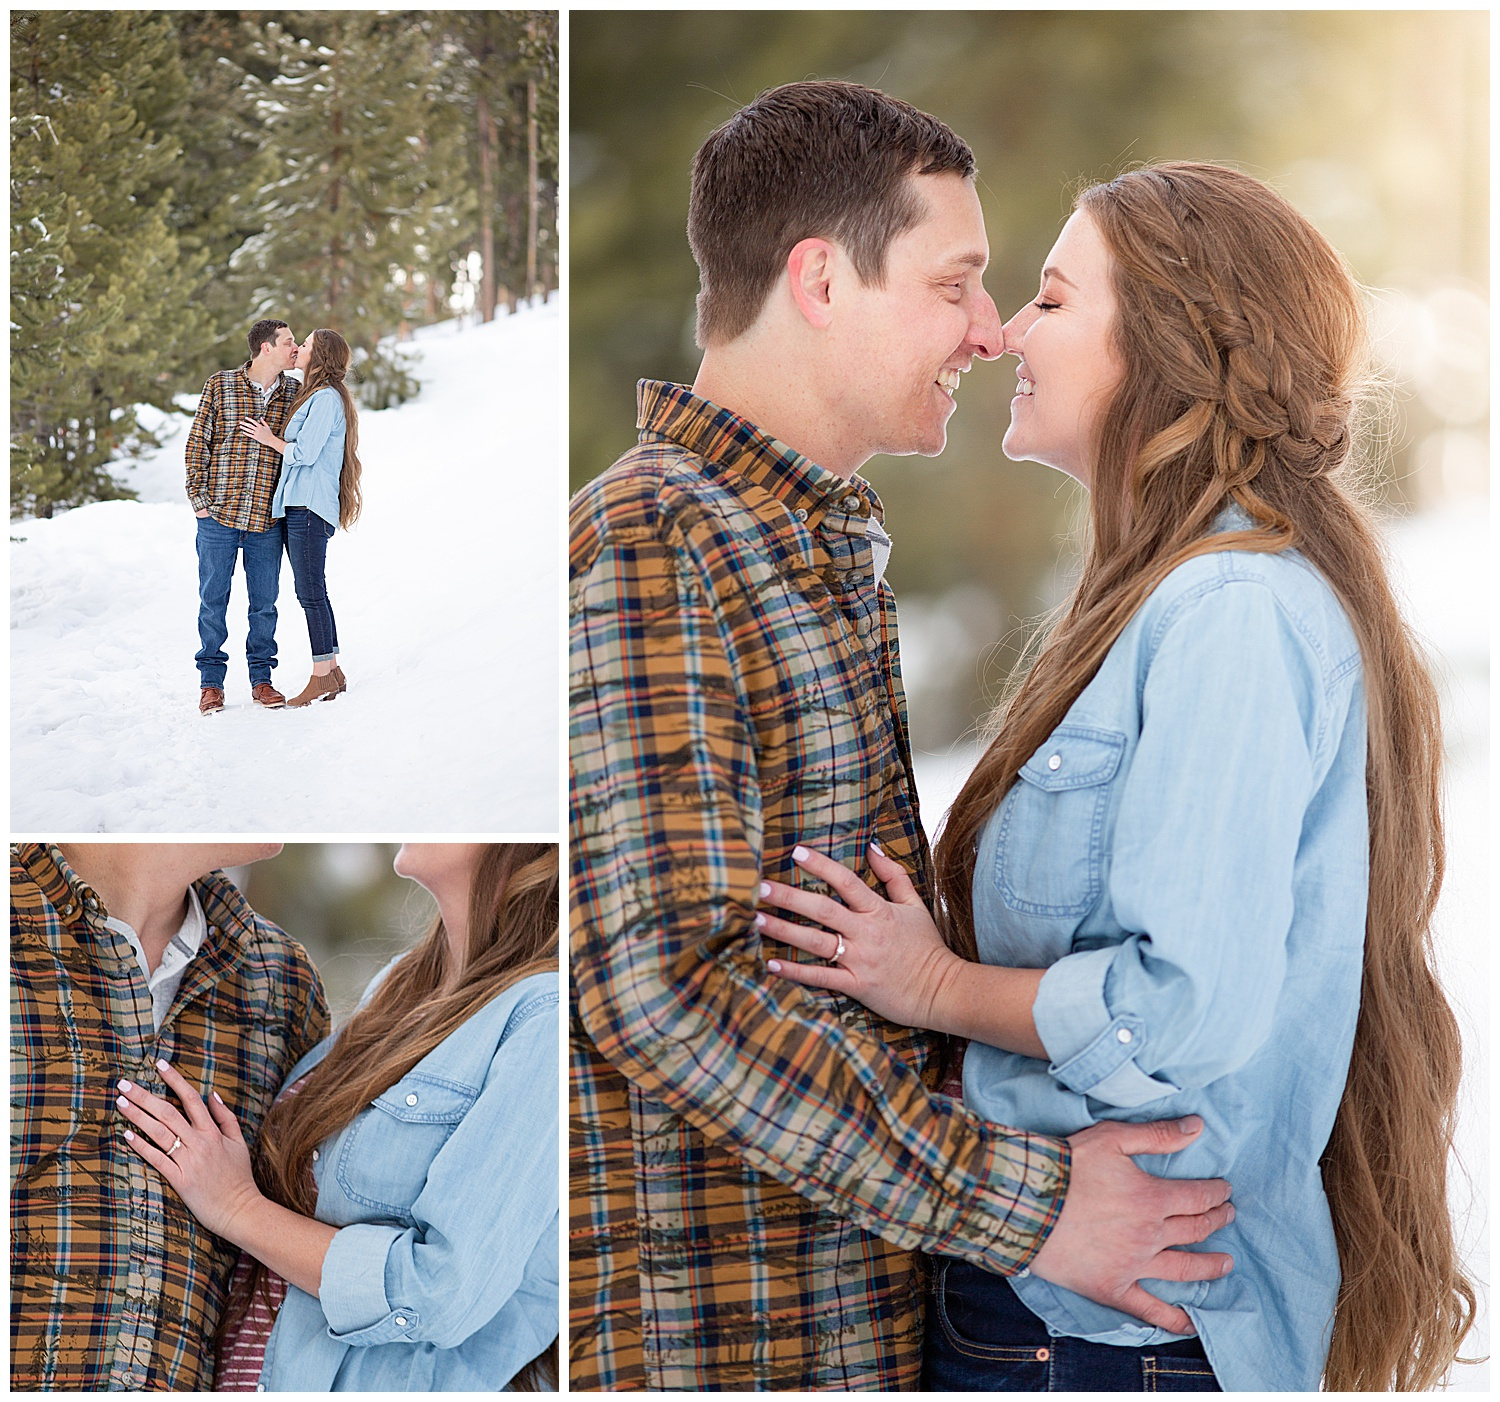 Winter-Breckenridge-Colorado-Engagement-Session_0011.jpg